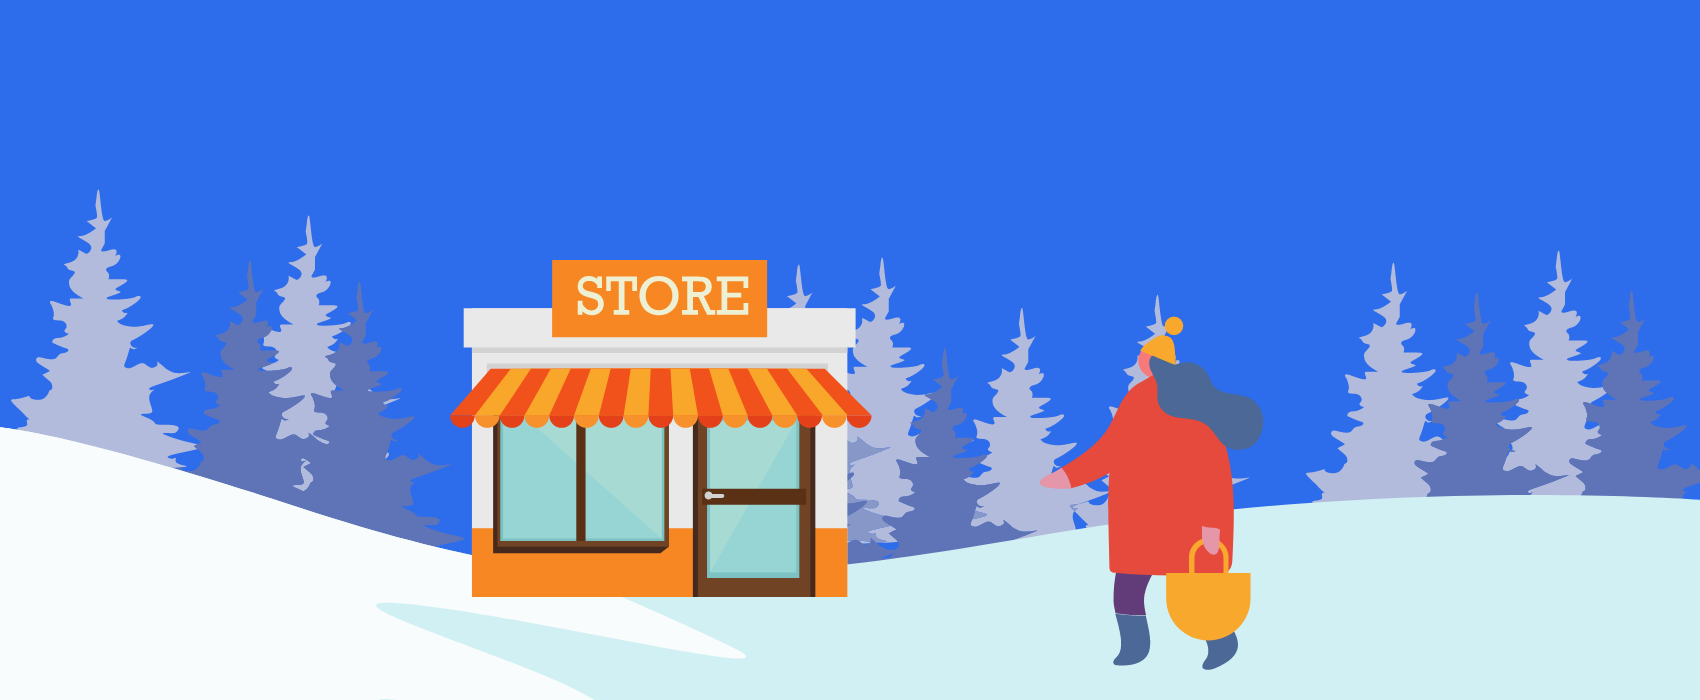 Top Five Retailer Tips For a Winning Winter Strategy